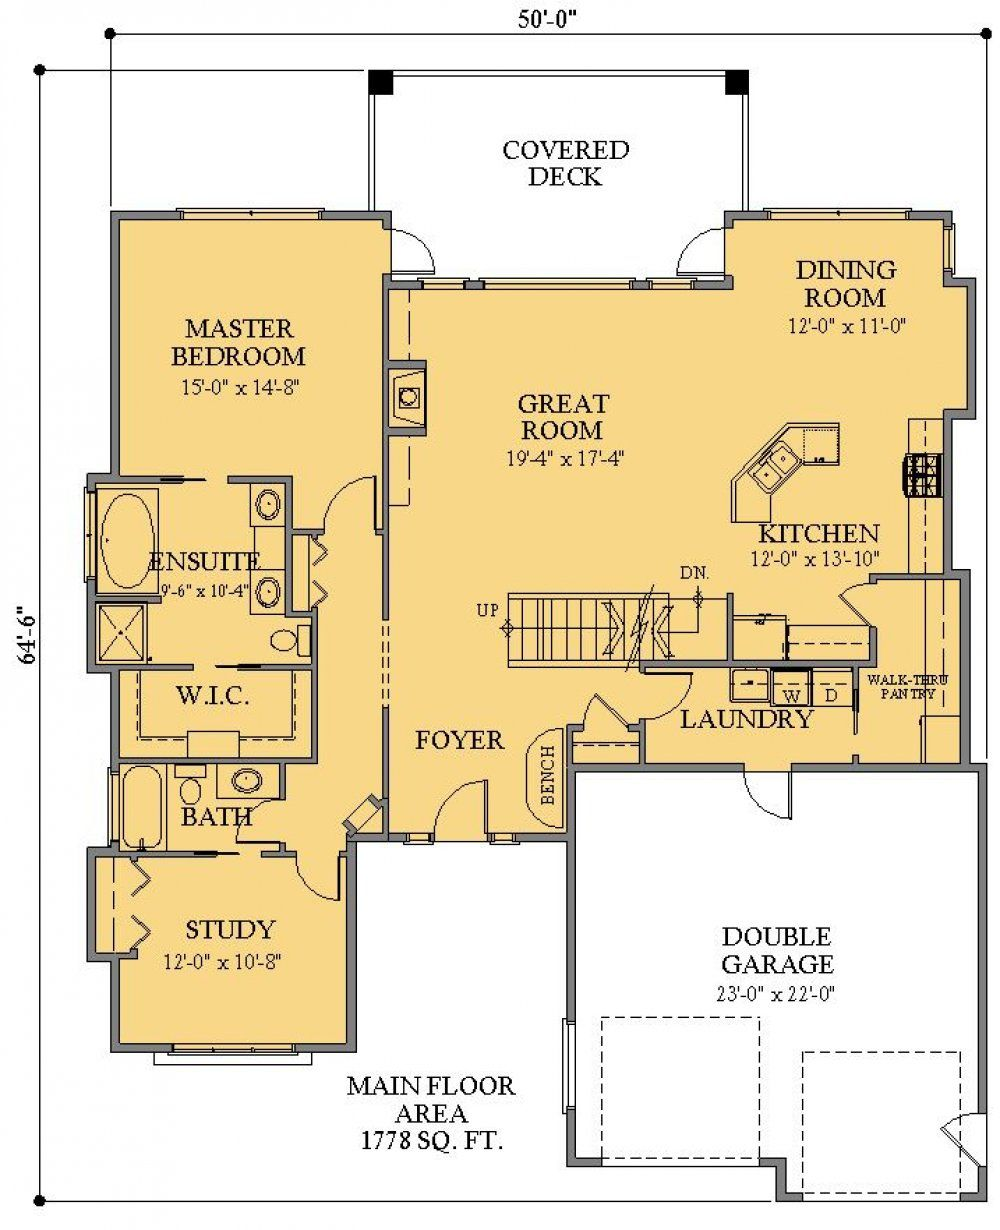 House Plans 8x15m With 4 Bedrooms Sam House Plans House Construction Plan Model House Plan Duplex House Design